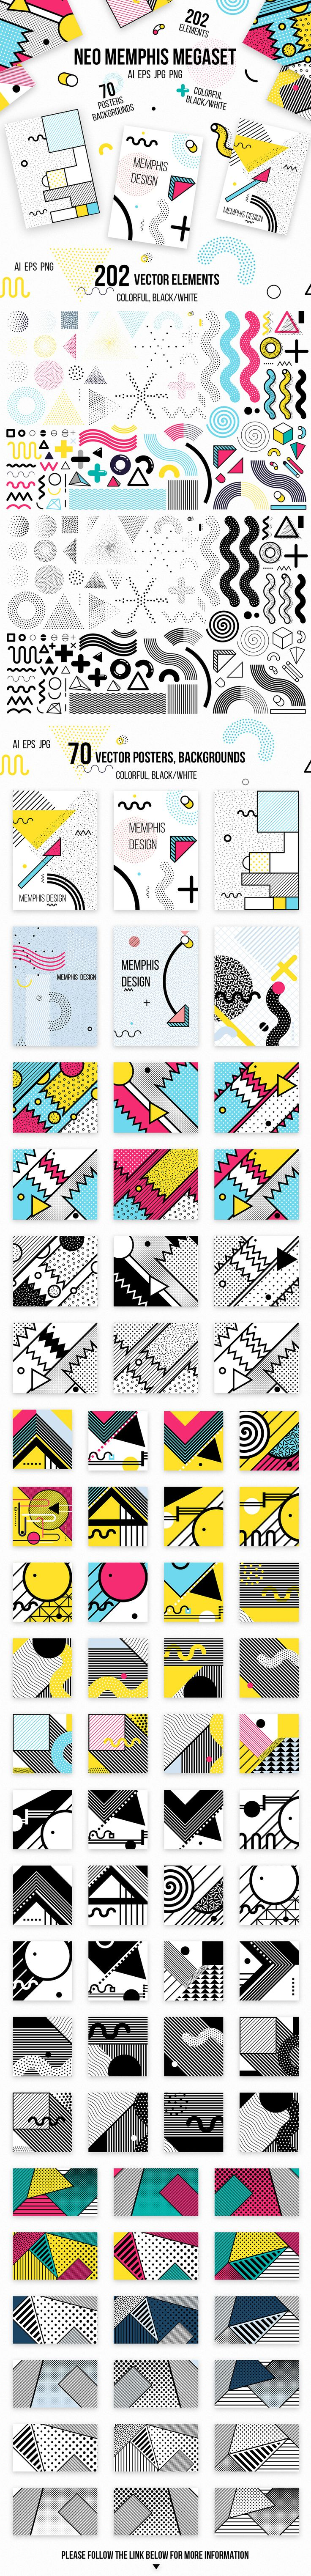 272 patterns, posters, elements. MEMPHIS MEGAset on Behance